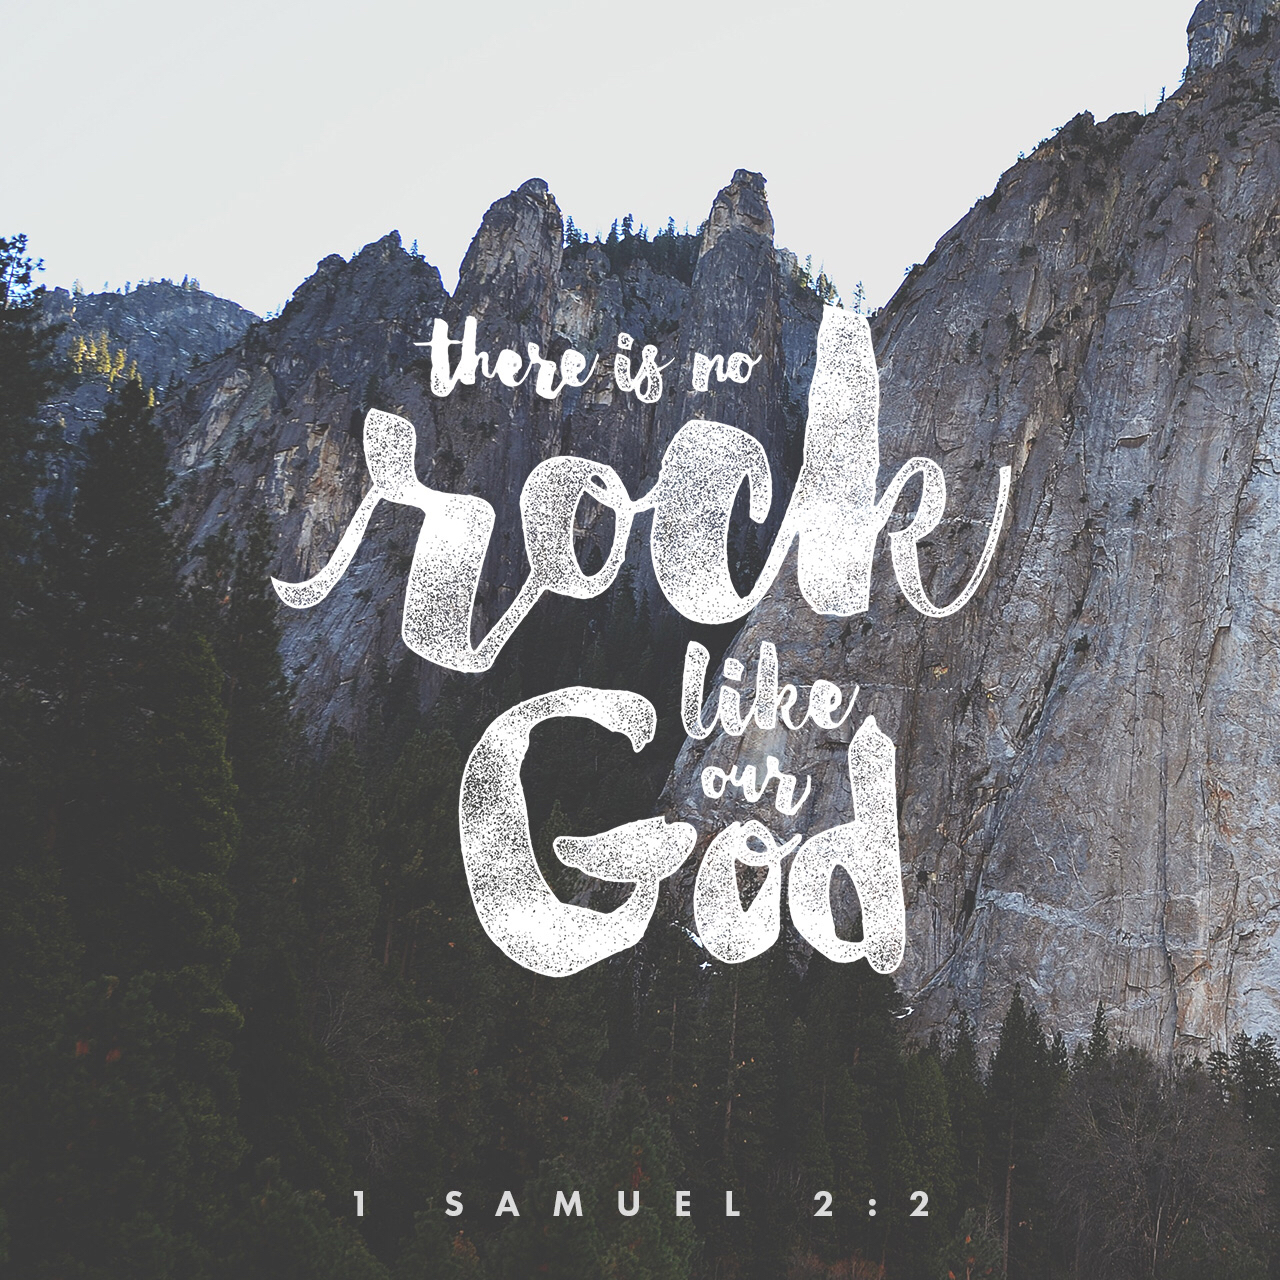 No Other Rock!